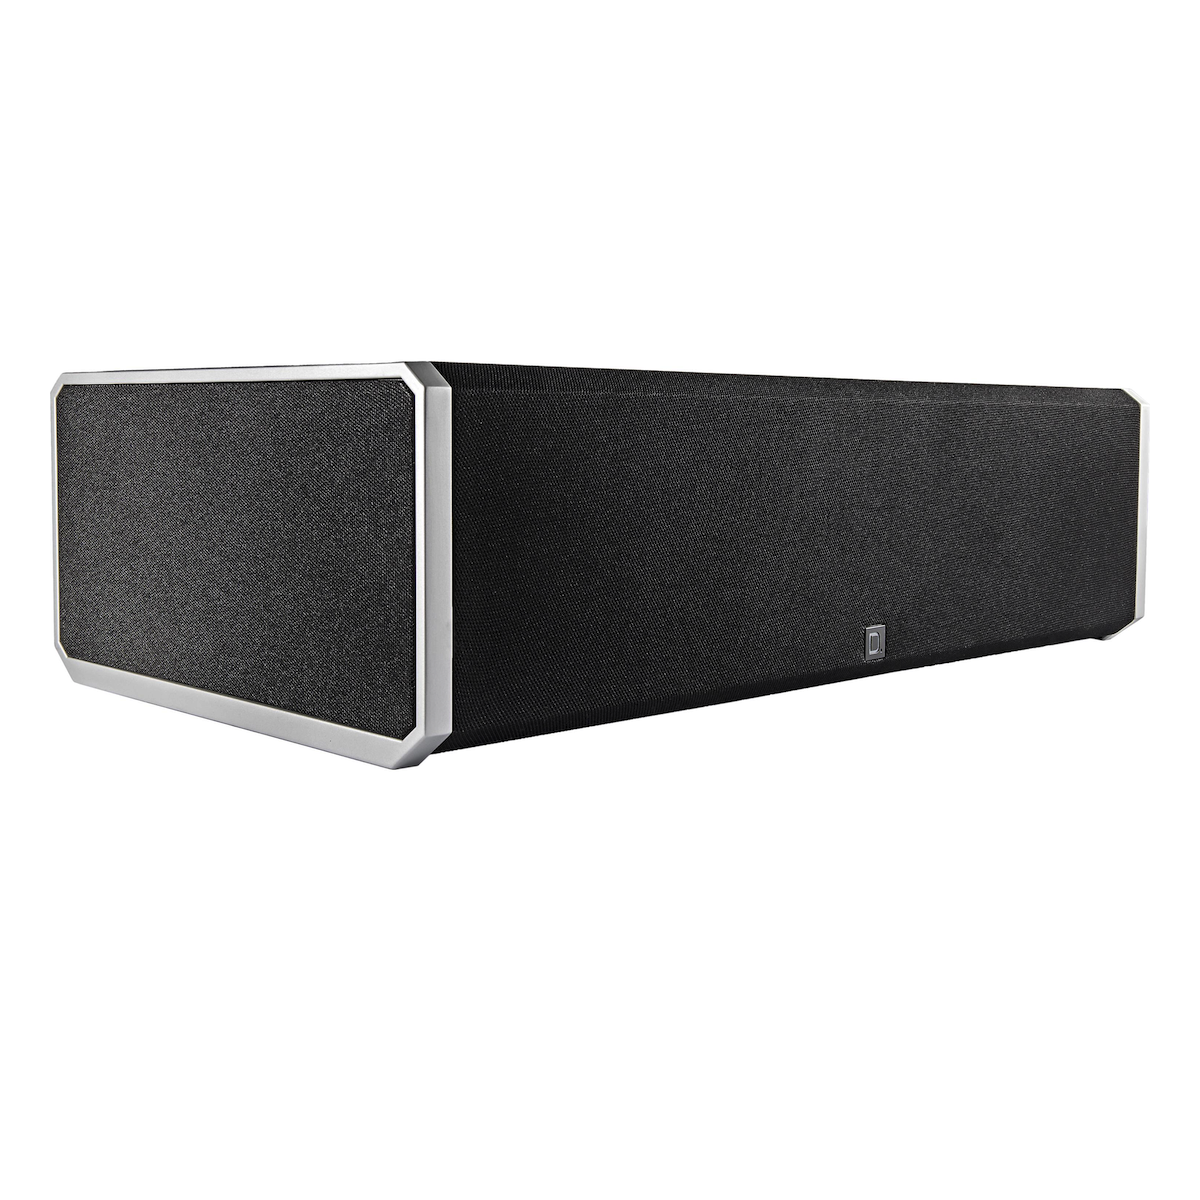 Definitive Technology CS9040 - Center Channel Speaker - AVStore.in